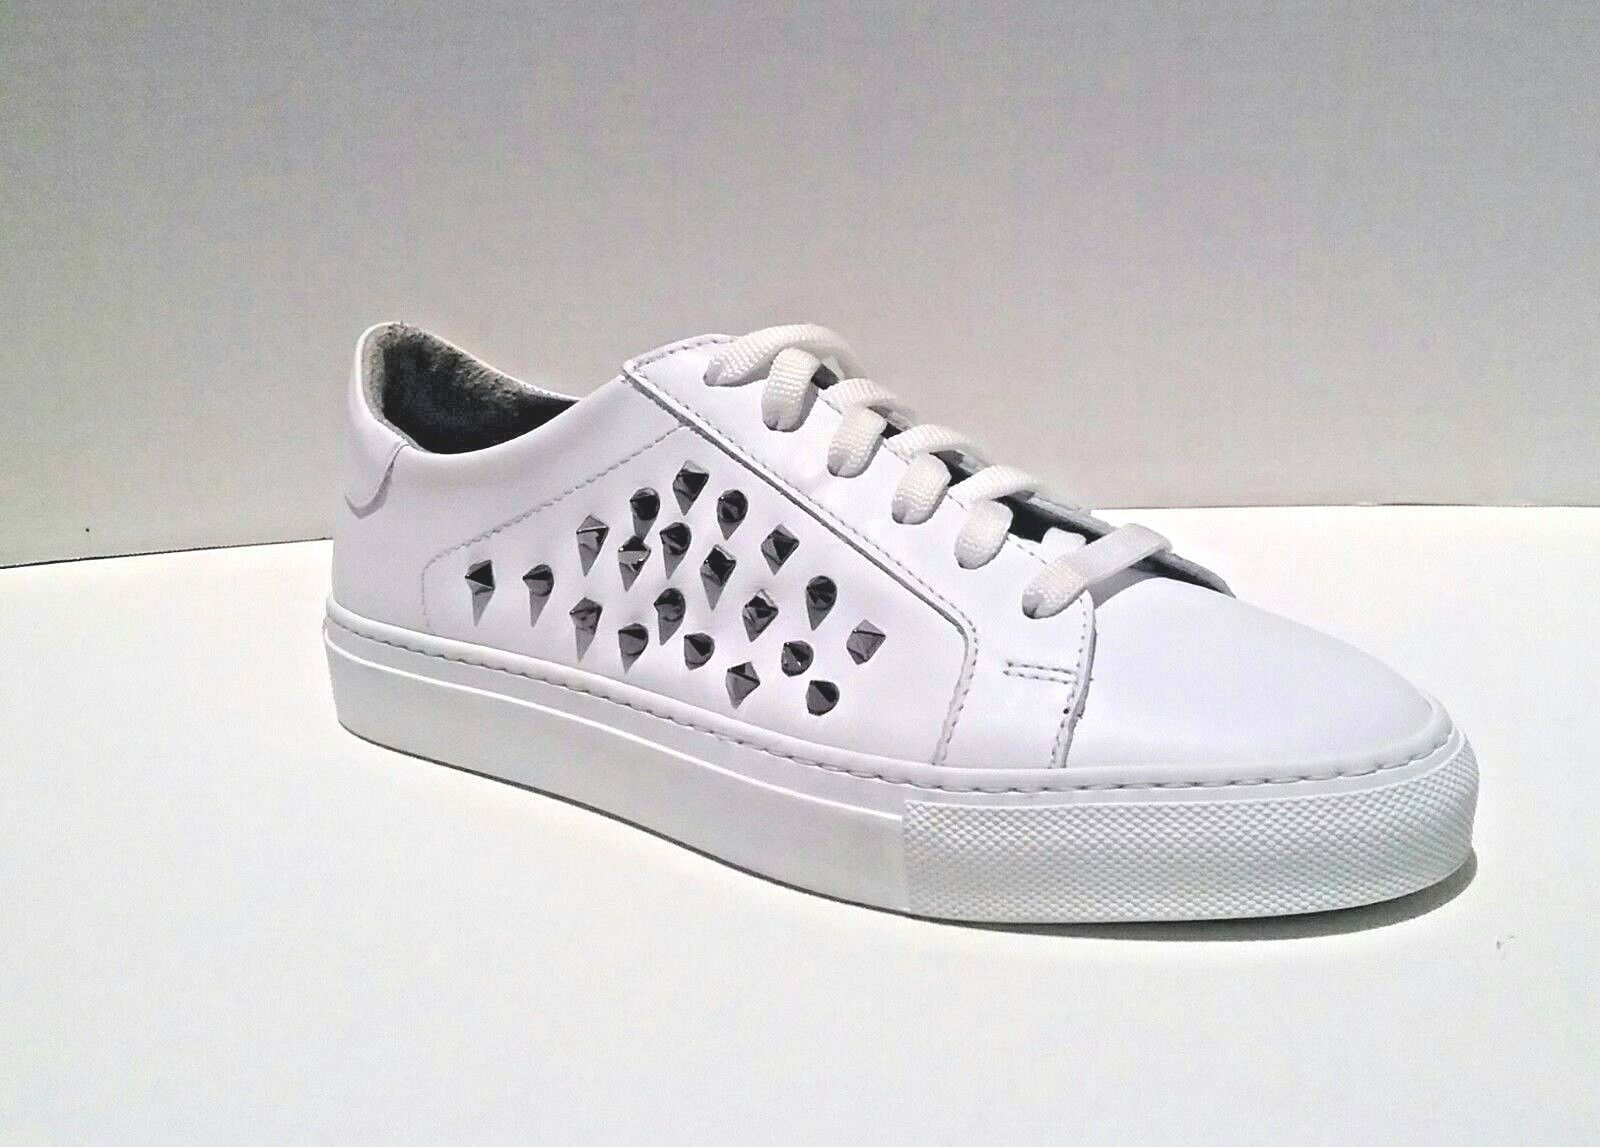 Boemos Italy Women's Euro Size 39 White Leather Pyramid Studded Lace Up Sneakers